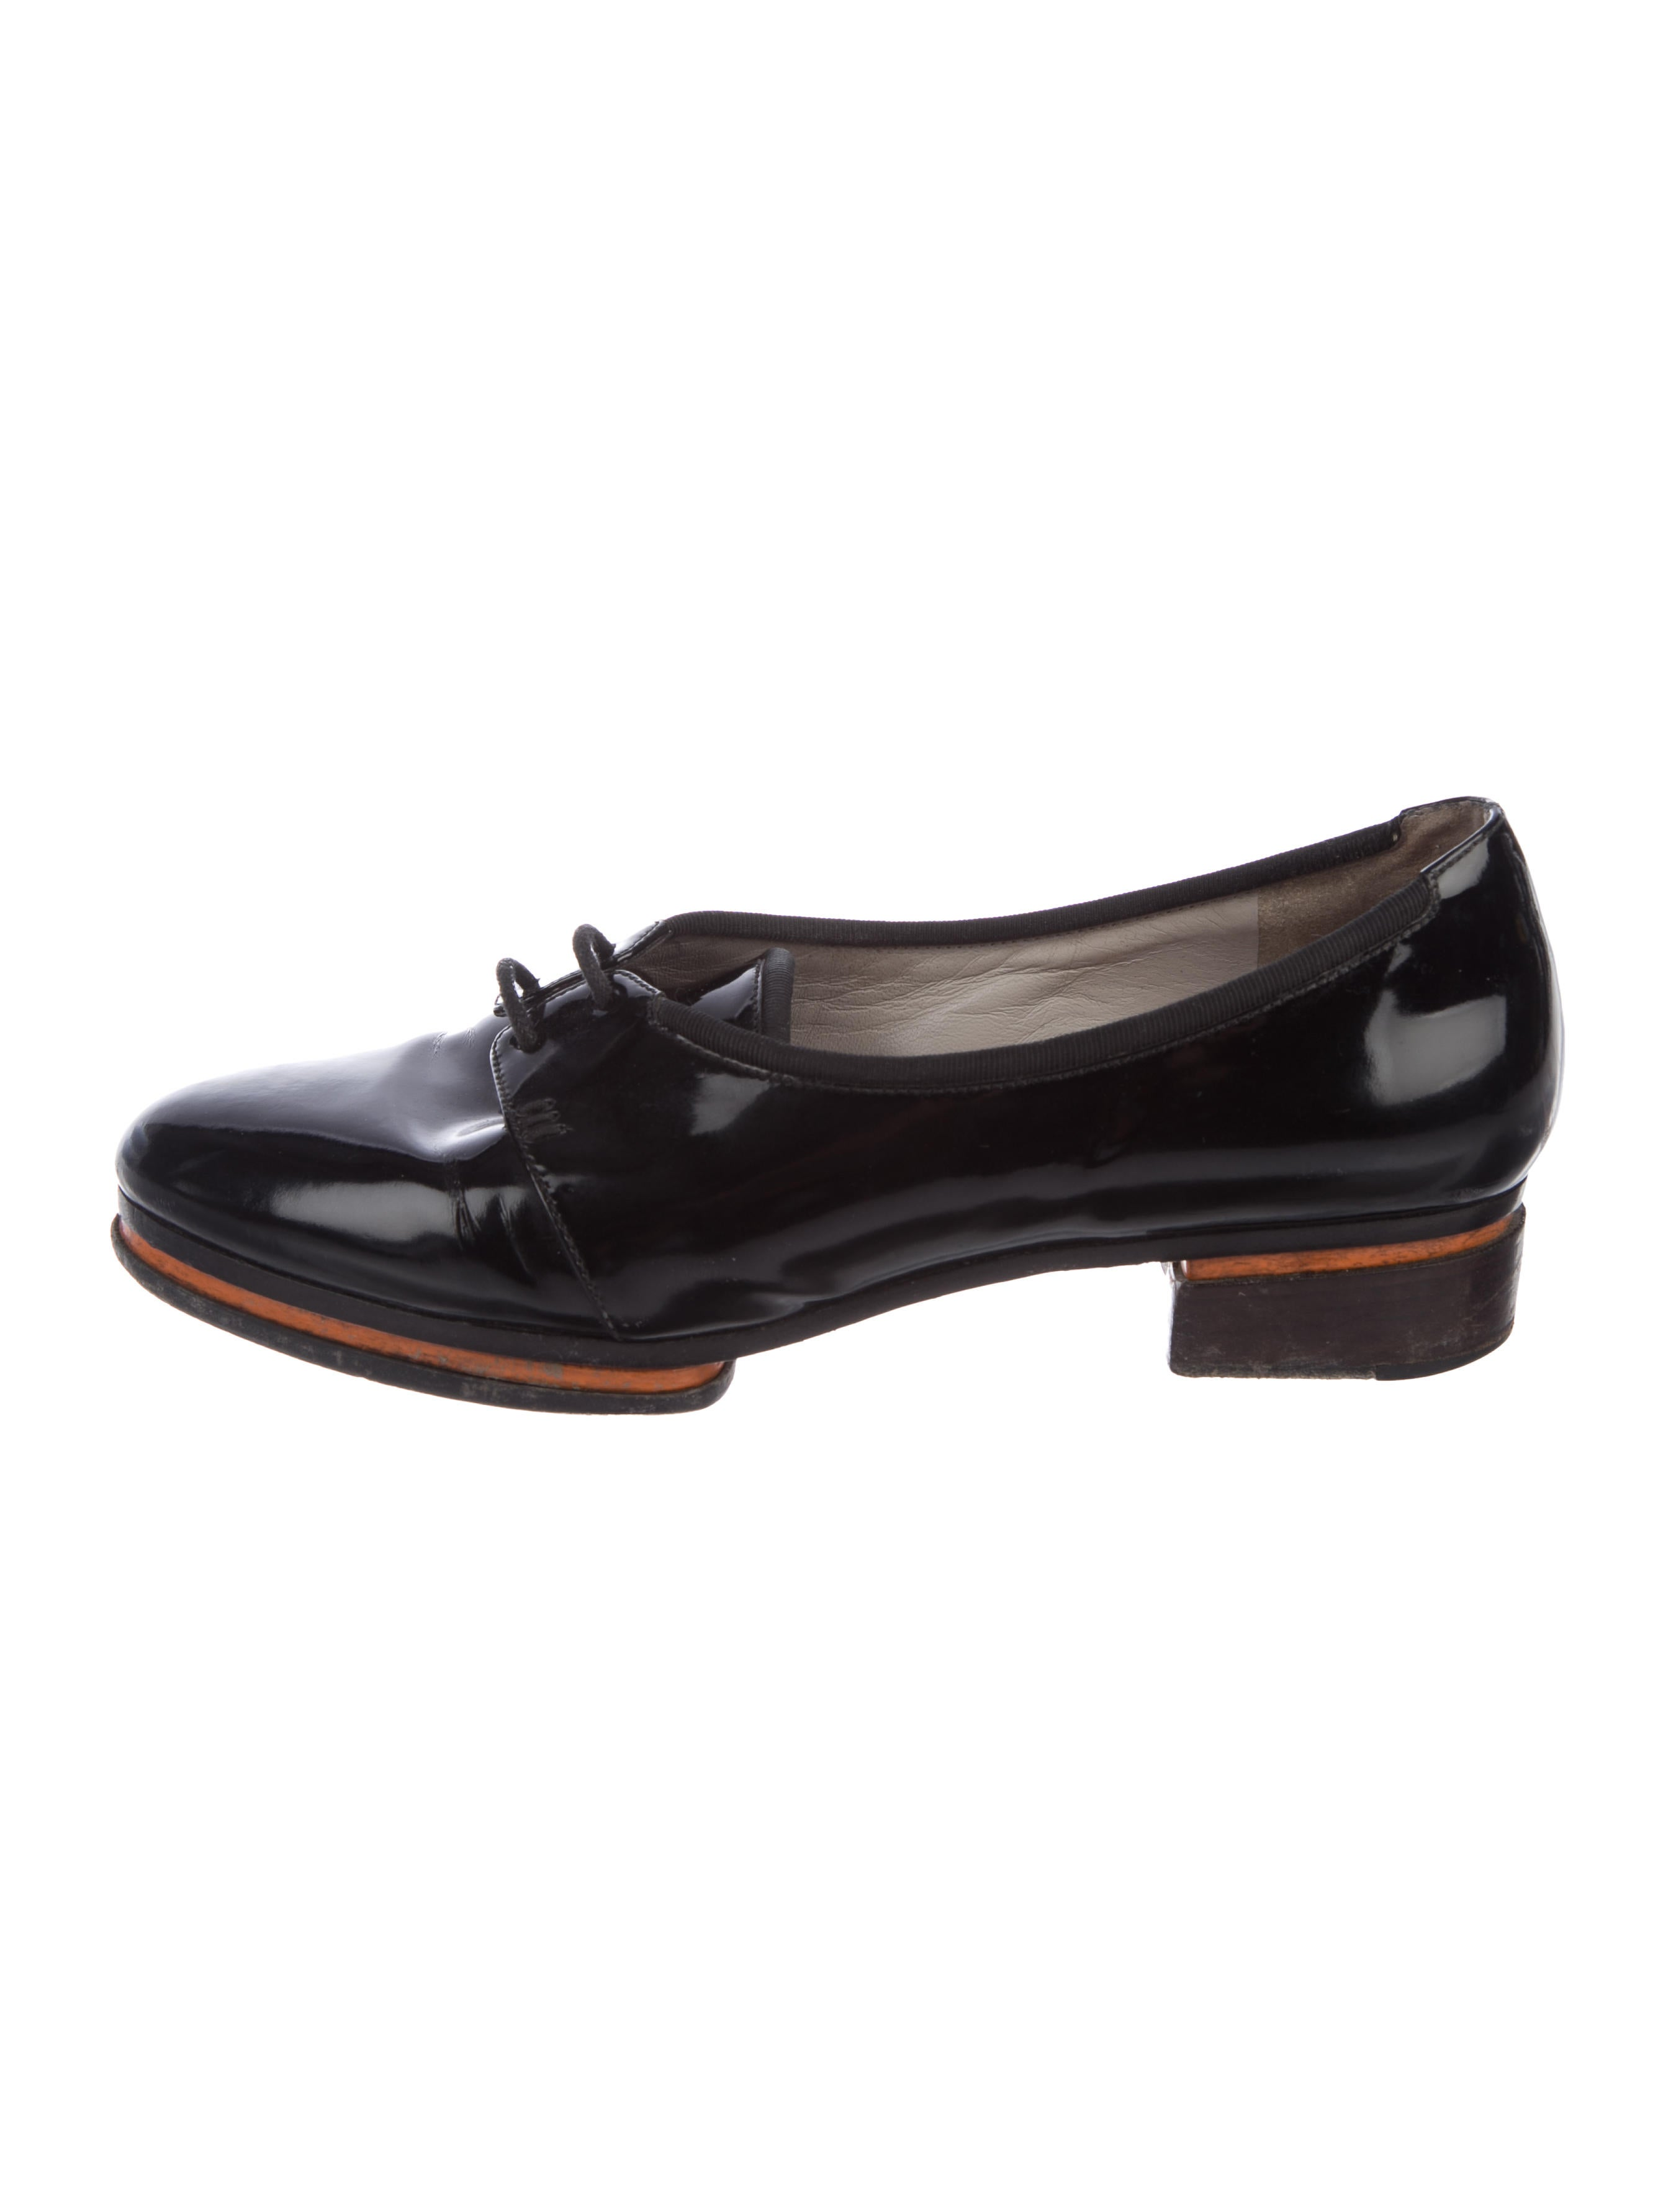 best for sale Jason Wu Patent Leather Round-Toe Oxfords outlet choice fashionable sale online sale 100% authentic wgmQyDK1do